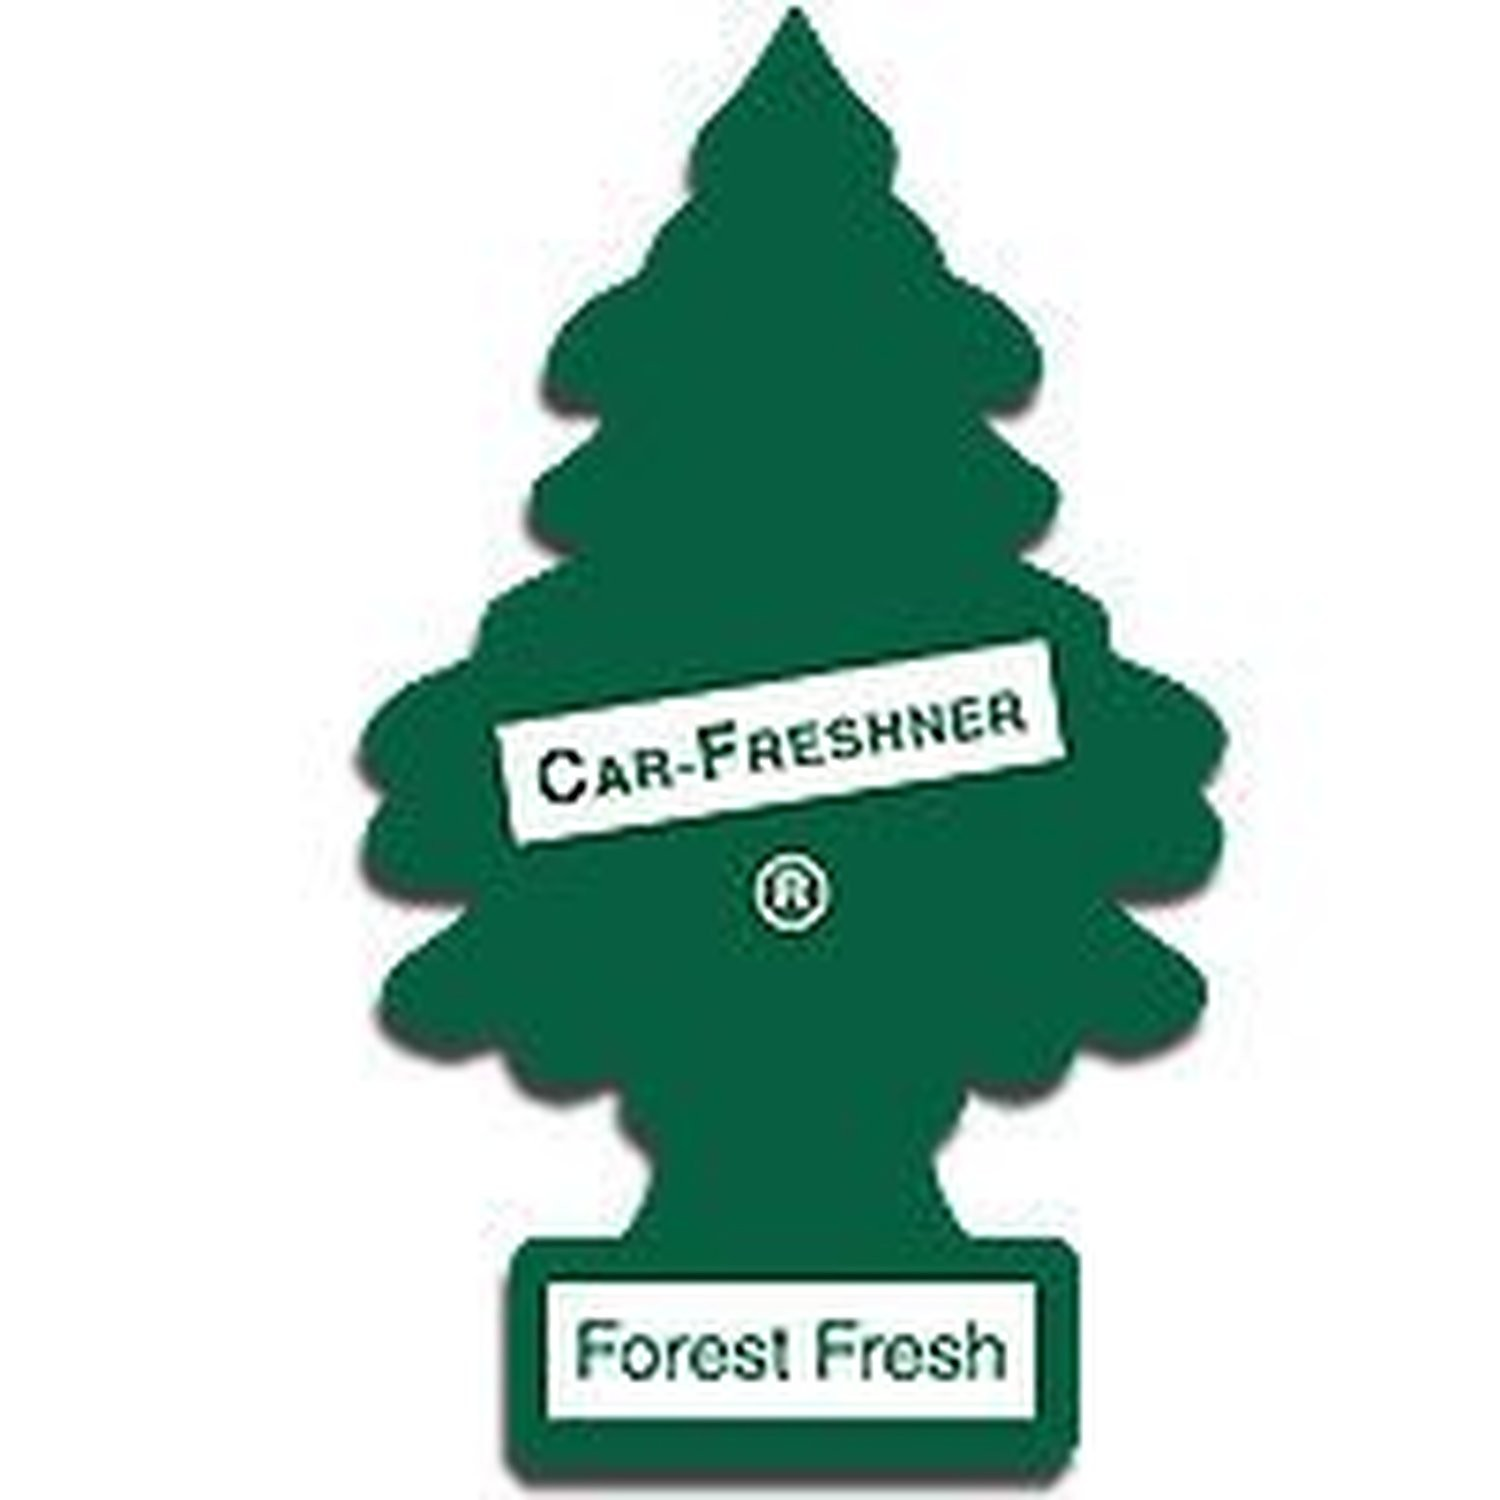 AoE Performance Magic Tree Car Air Freshener Duo Gift Pack Forest Fresh And Relax